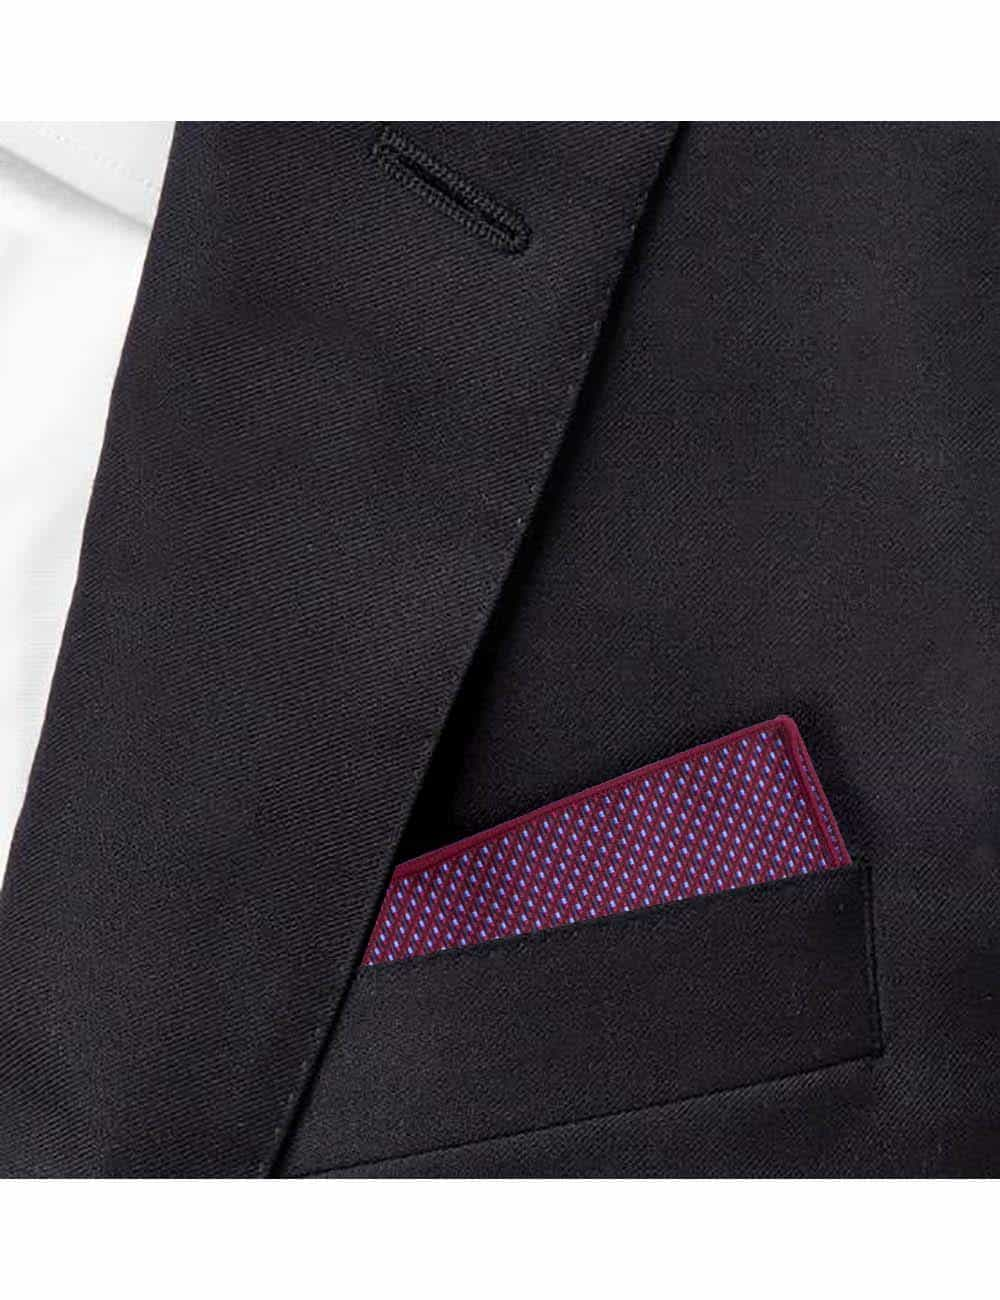 Red with Blue Dobby Woven Pocket Square PSQ71.9